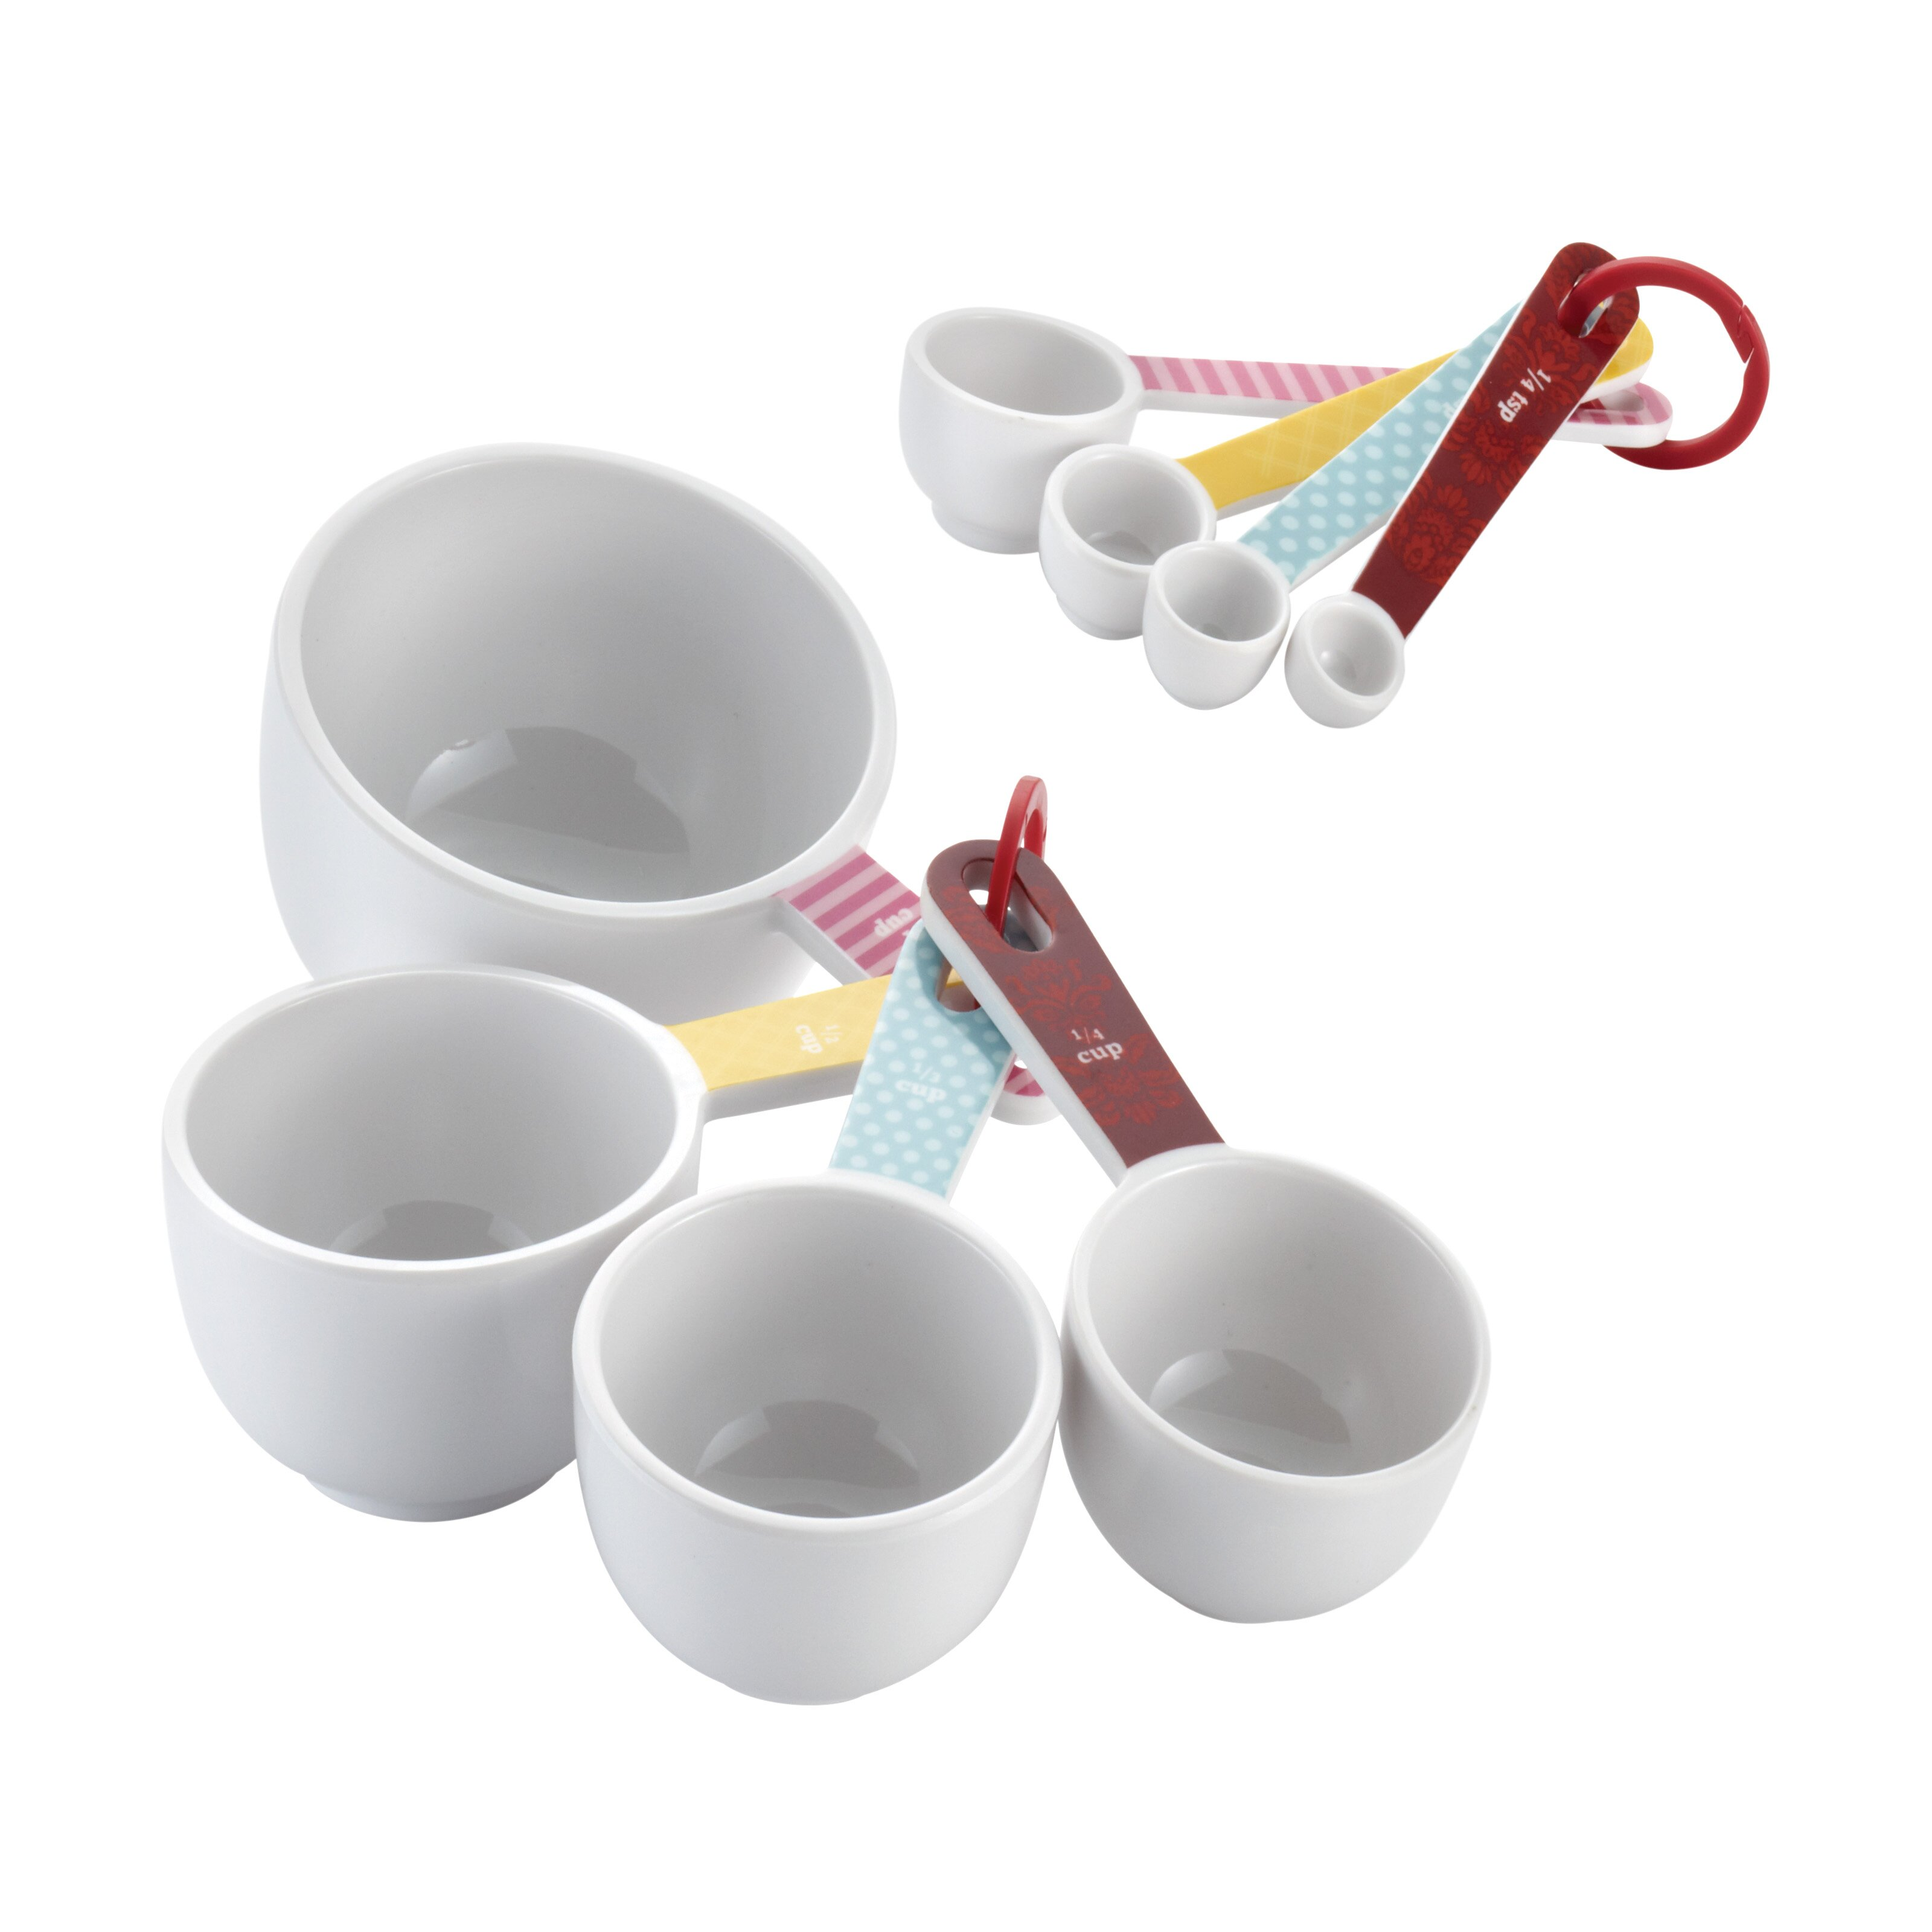 Cake Boss 8 Piece Measuring Cup Amp Spoon Set Amp Reviews